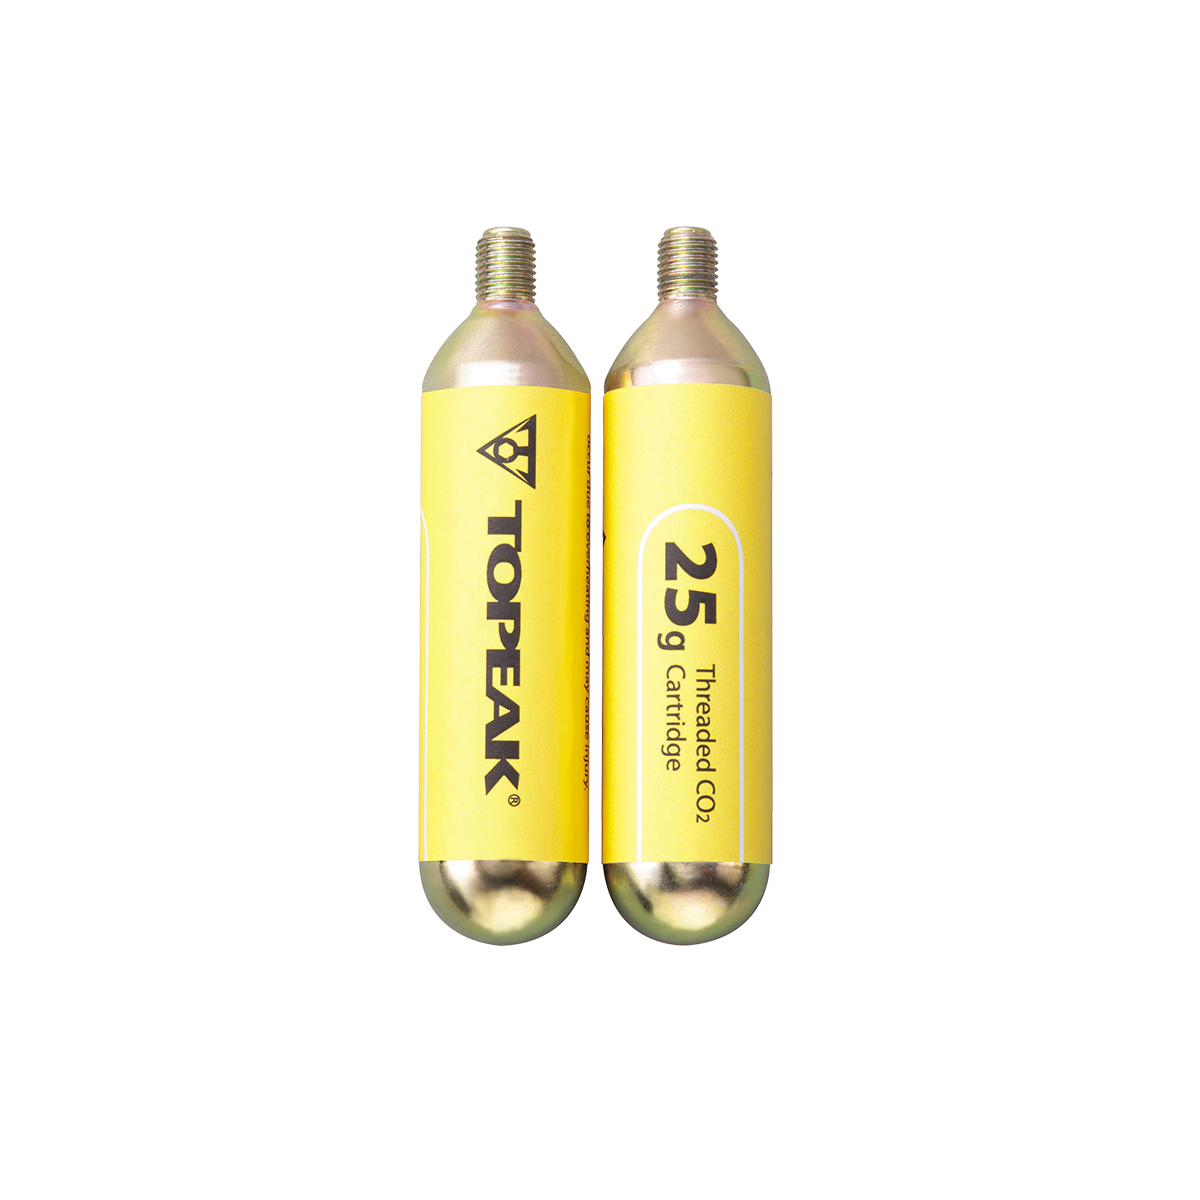 25G THREADED CO2 CARTRIDGE | Topeak